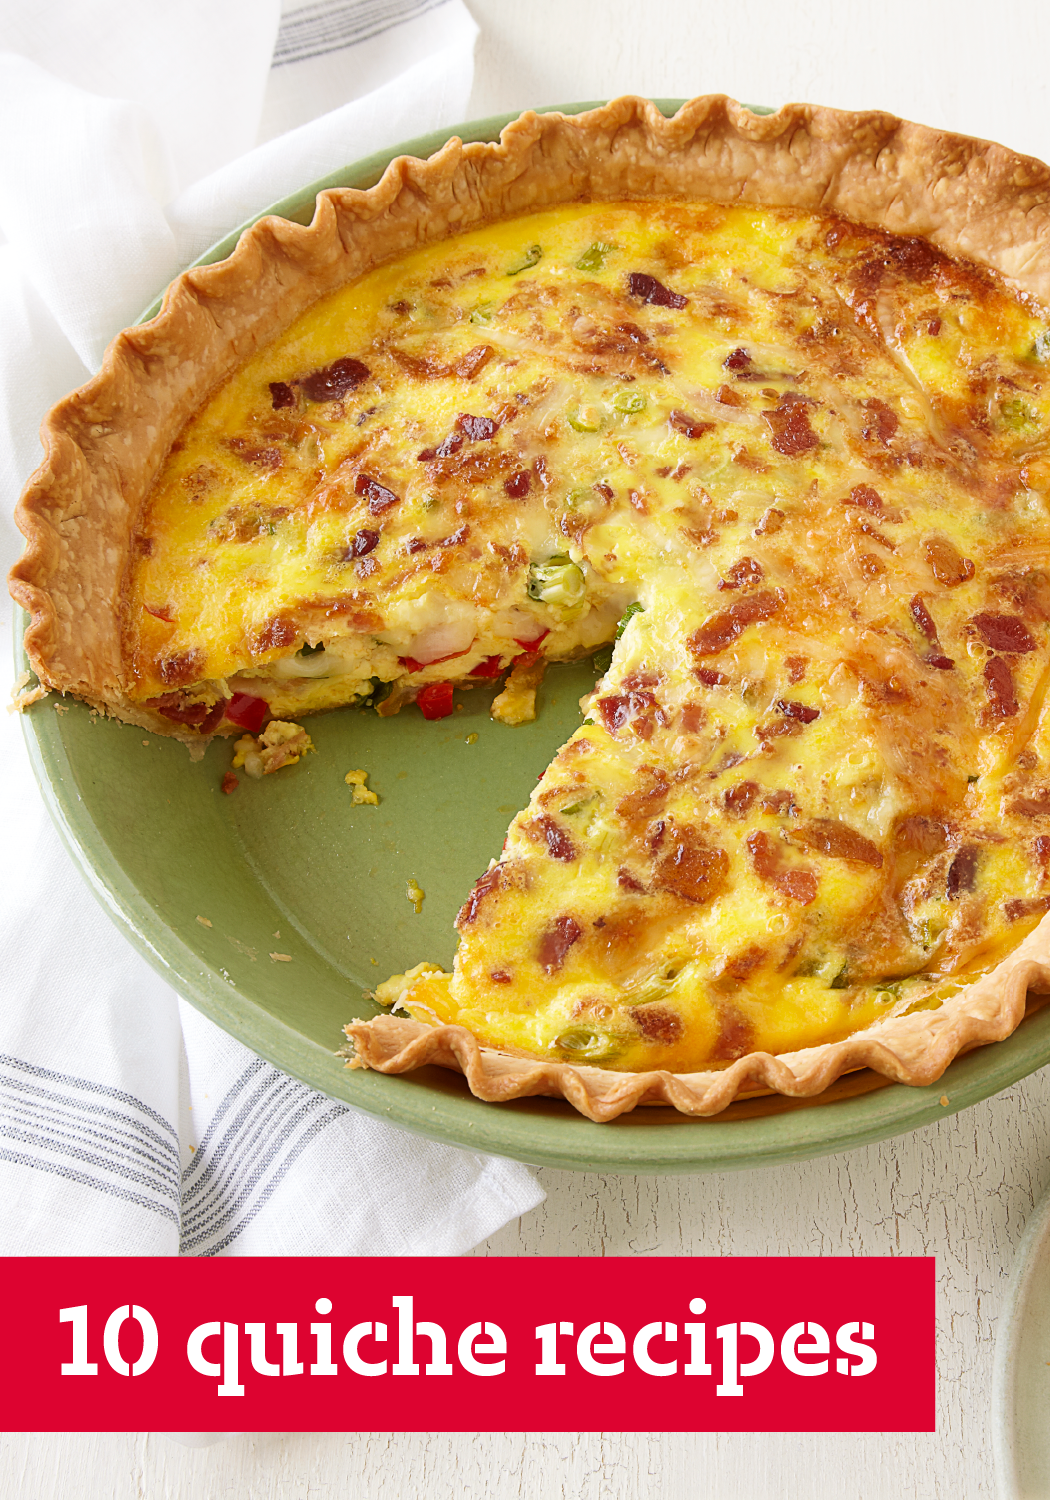 10 Quiche Recipes – Hosting brunch this holiday season is ...